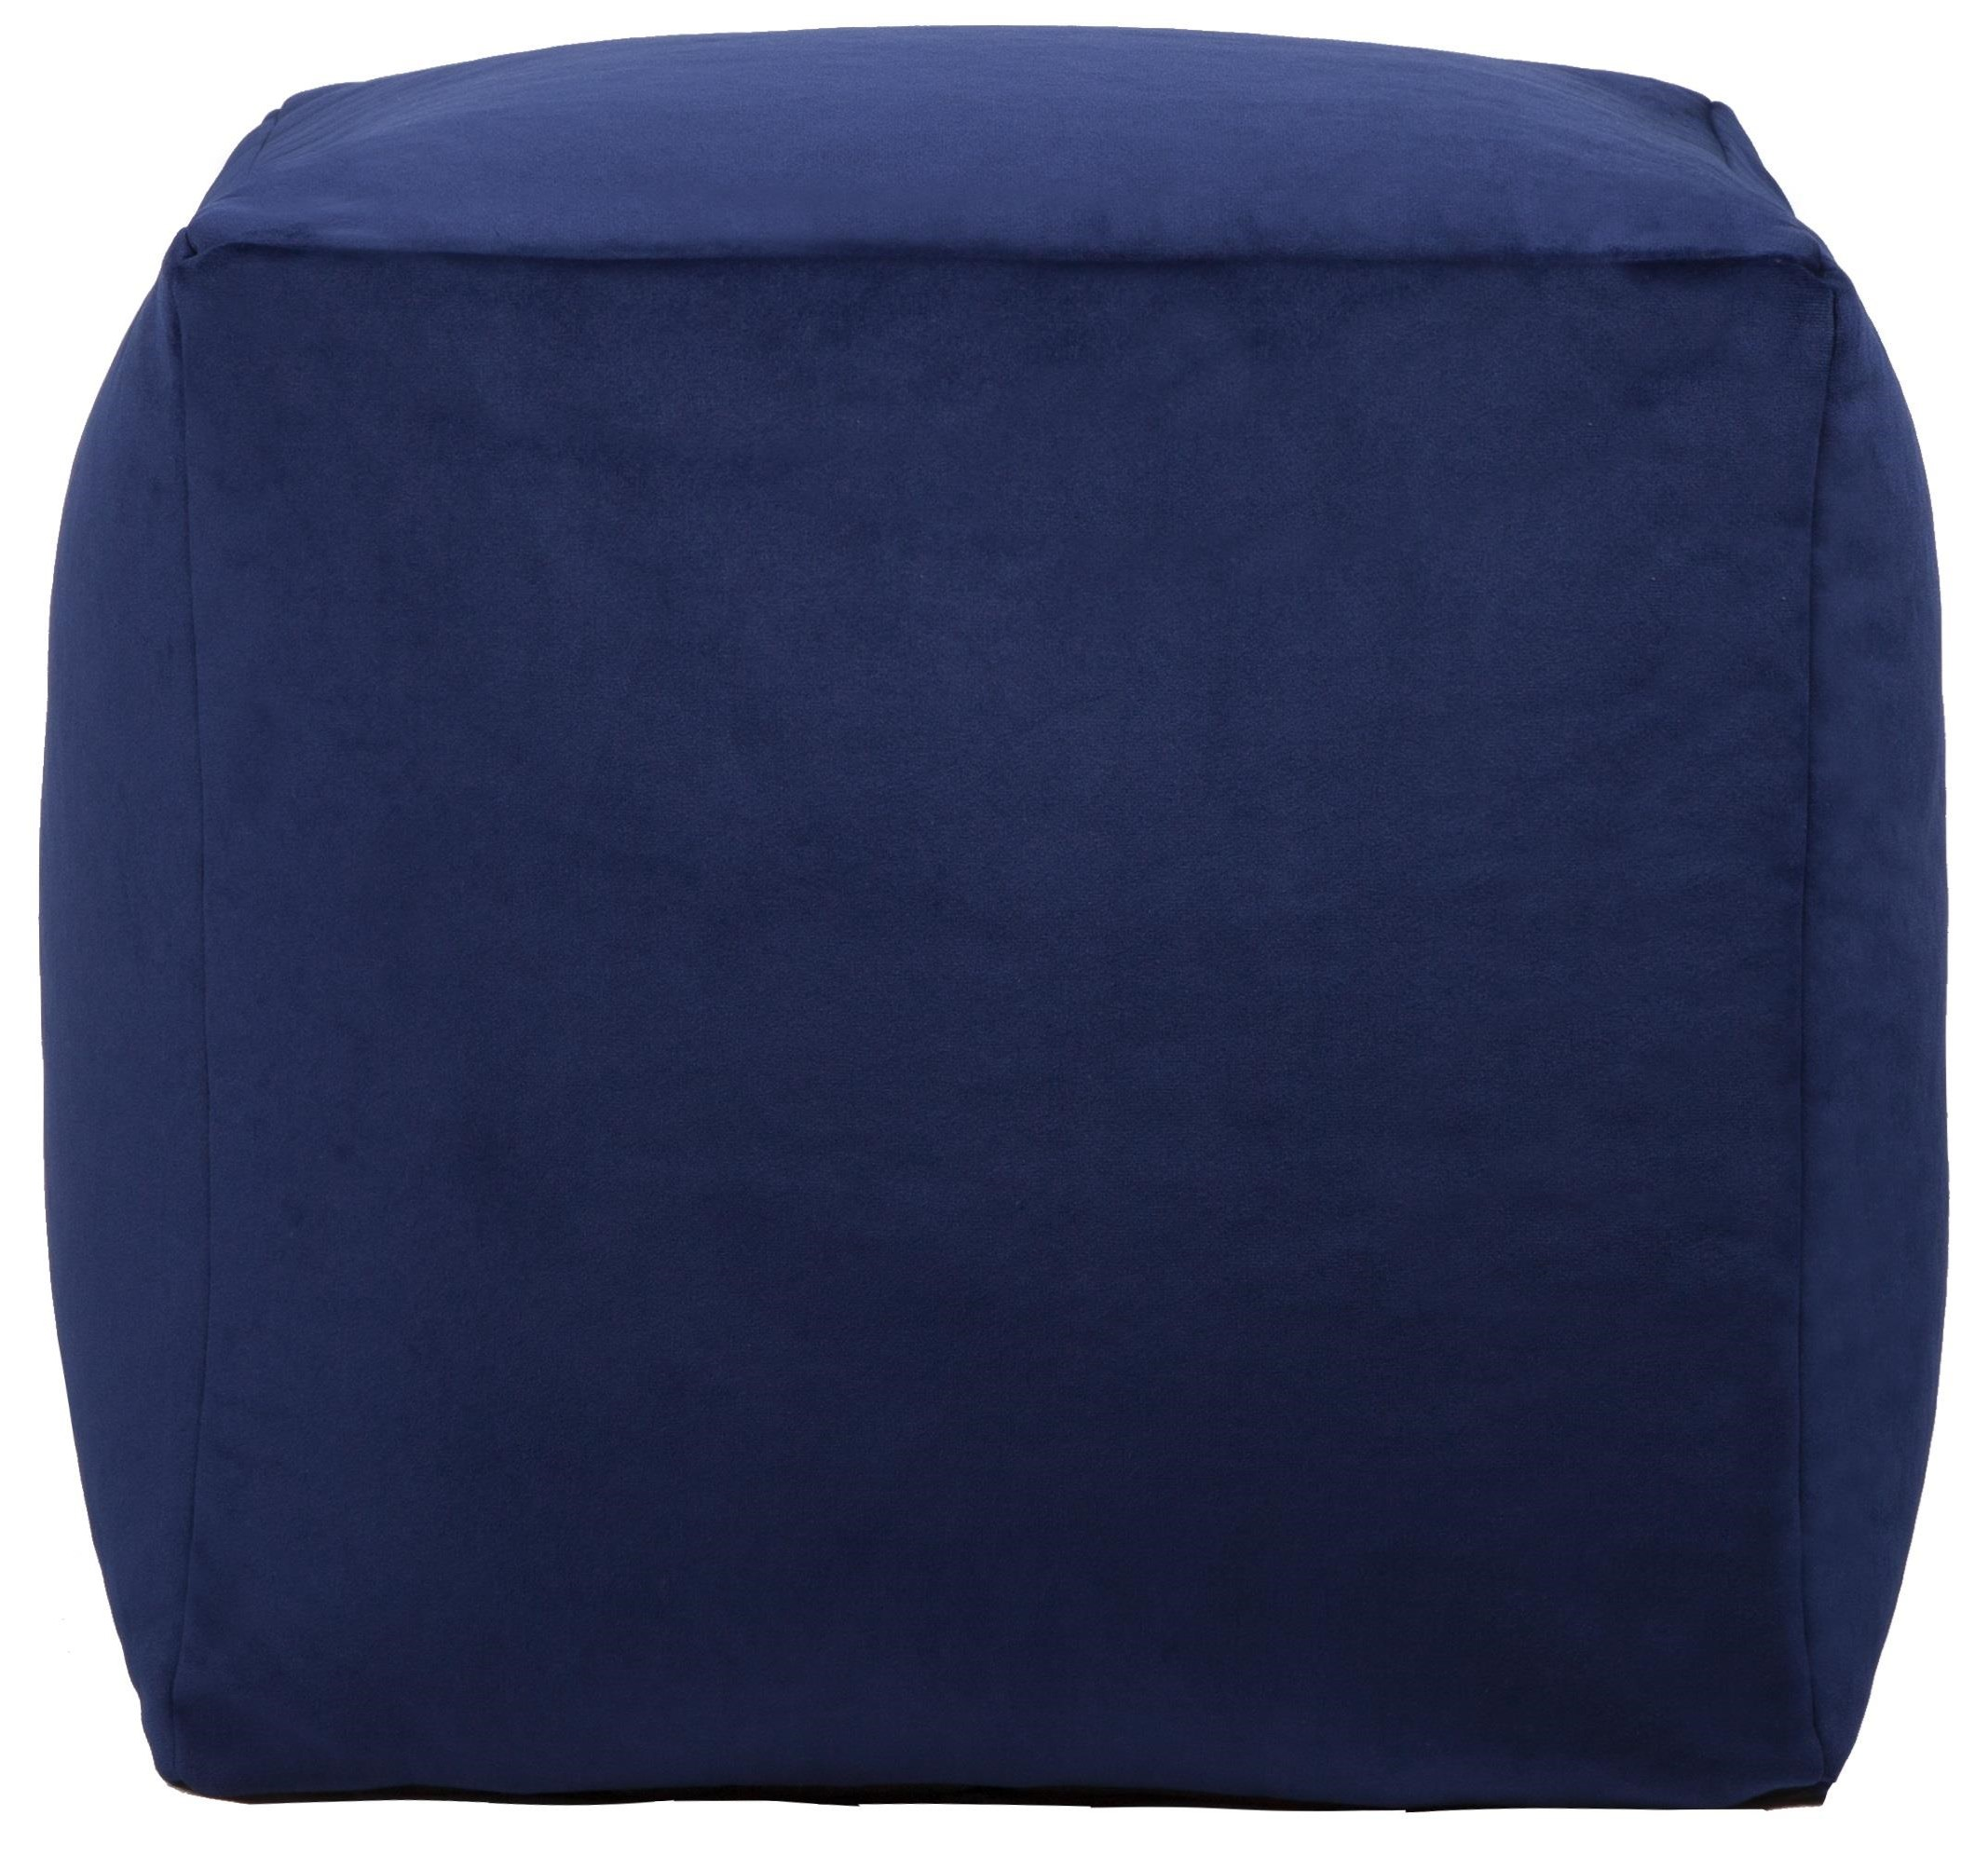 Beanbag Blue Cube Beanbag by Lazy Life Paris at Red Knot